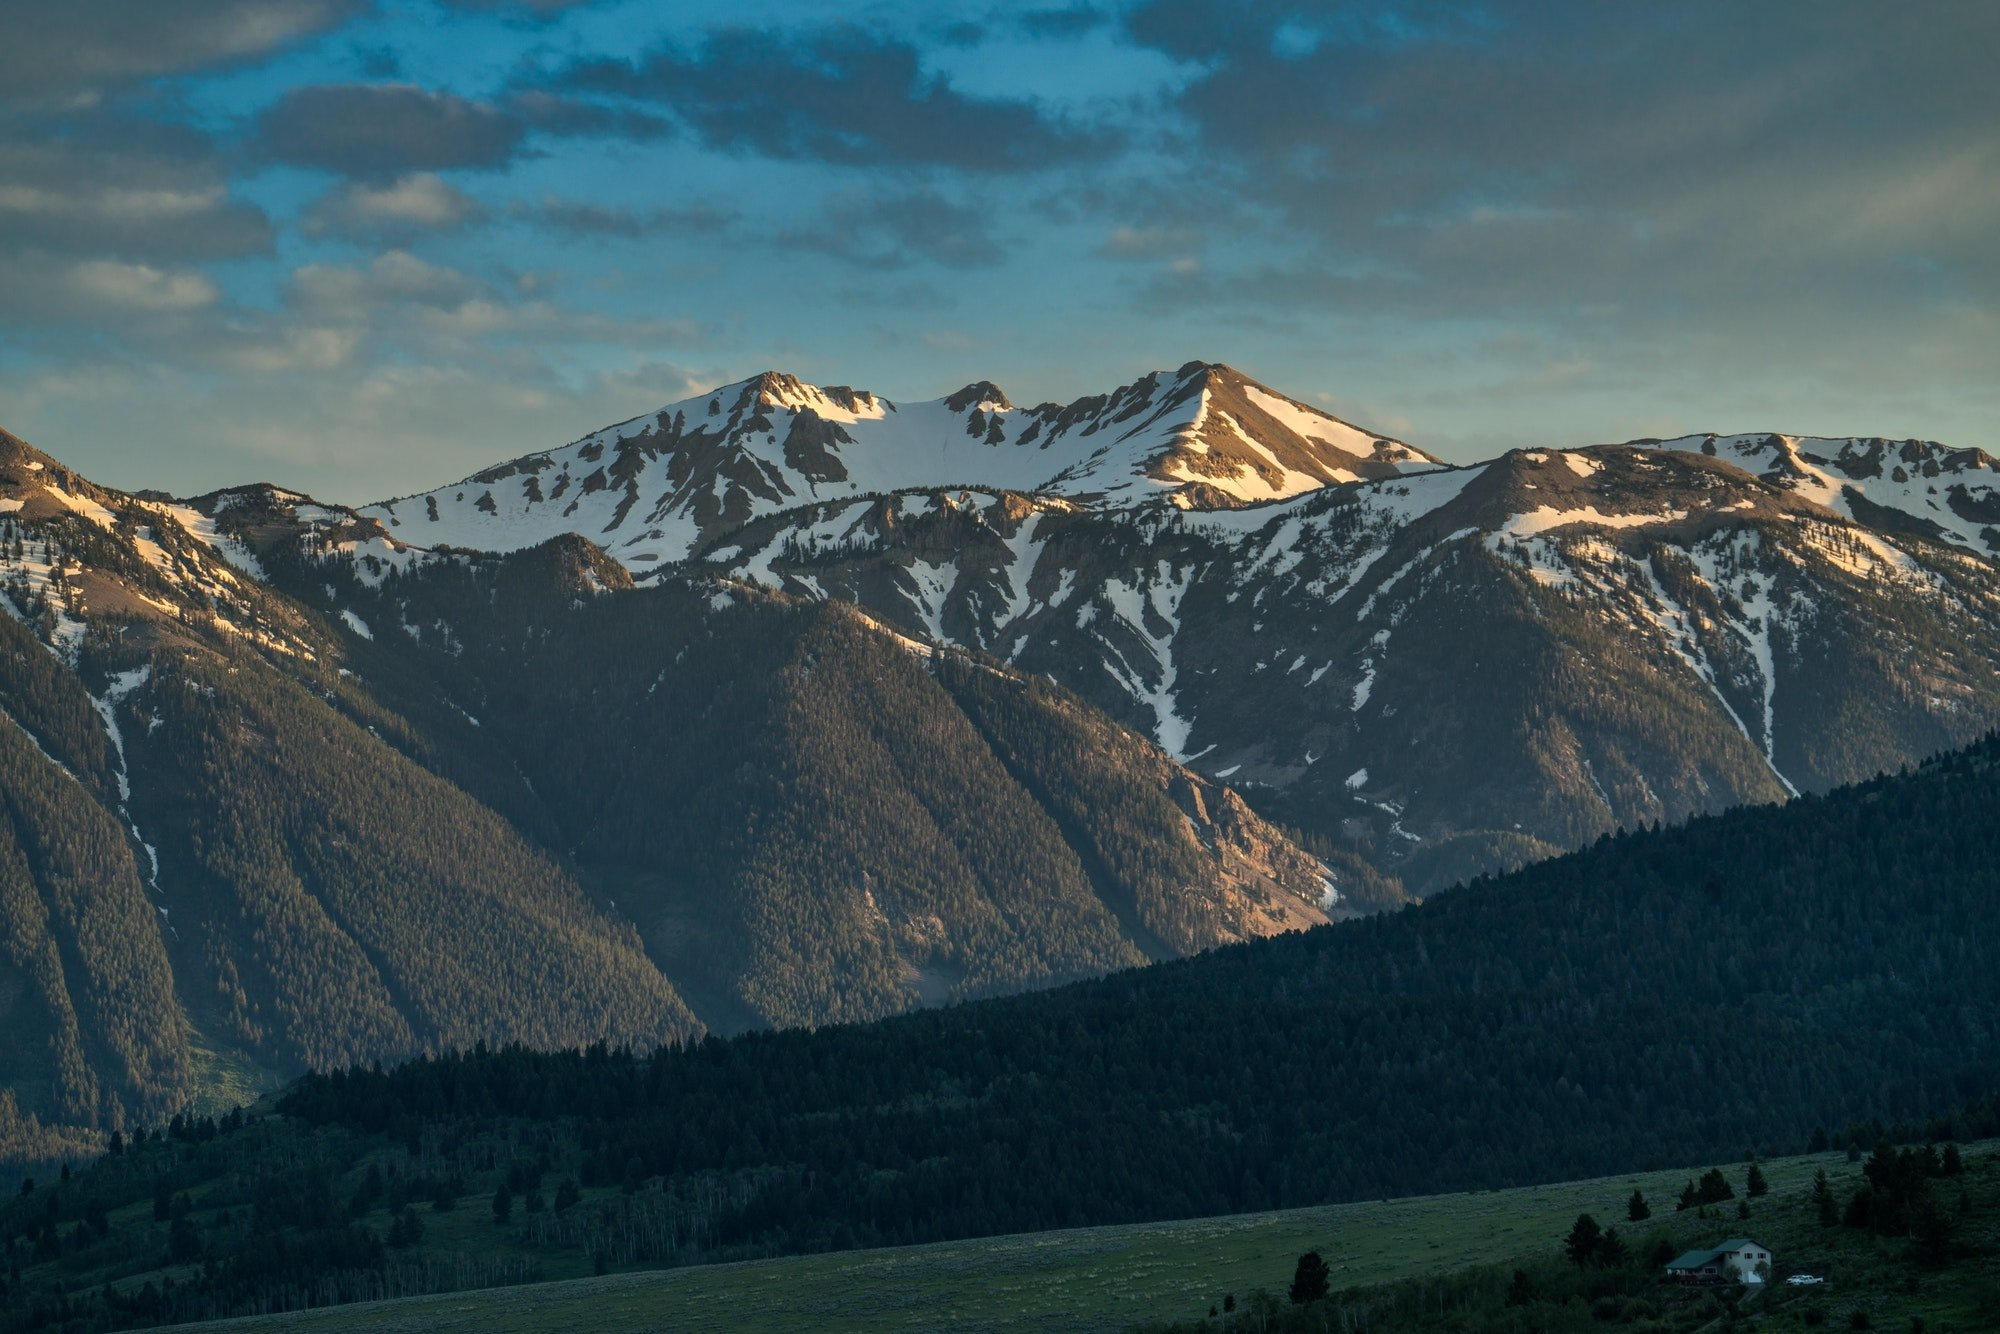 Mountains in Montana and Idaho landscape